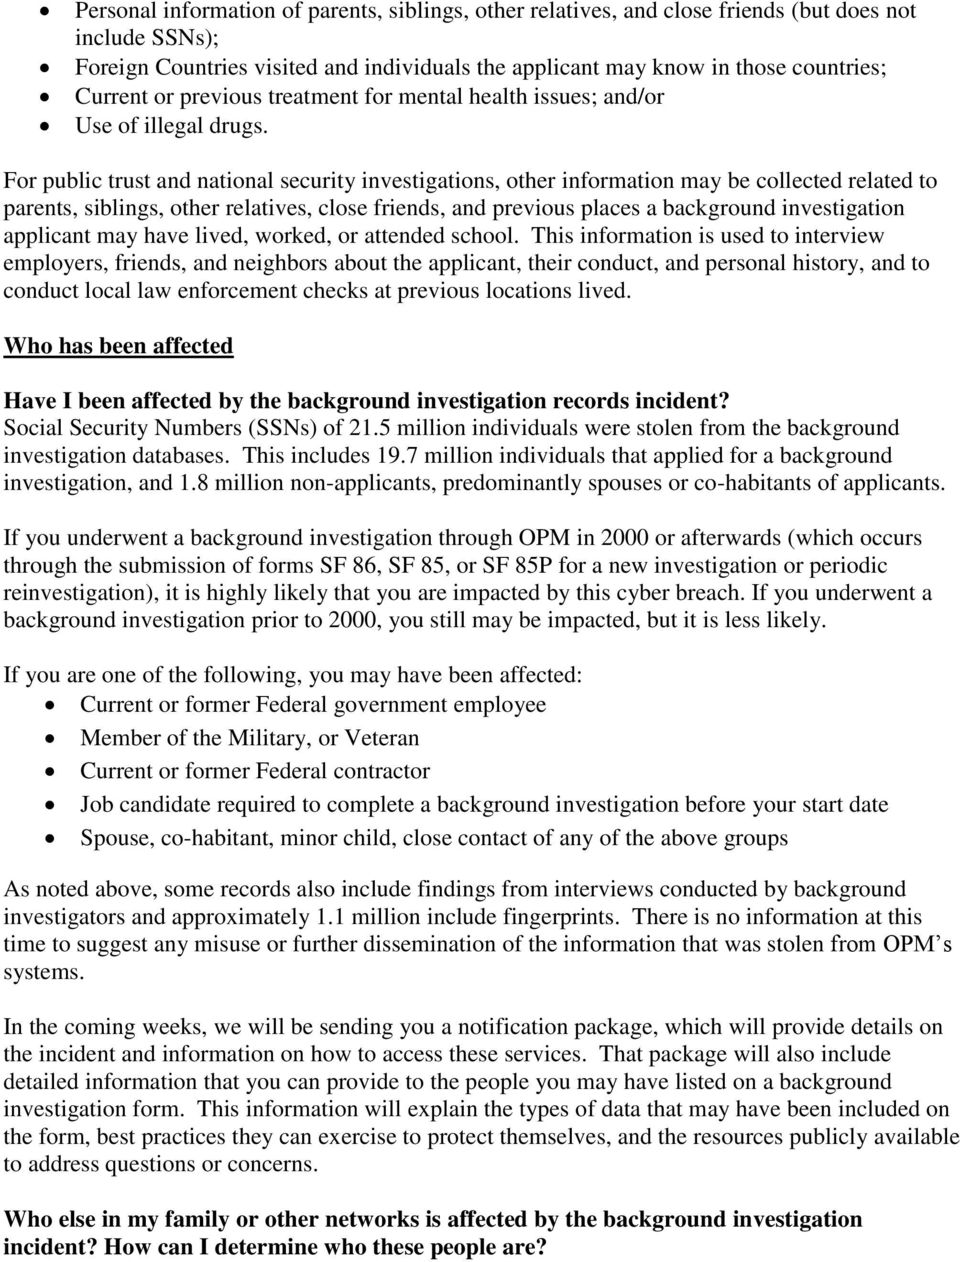 For public trust and national security investigations, other information may be collected related to parents, siblings, other relatives, close friends, and previous places a background investigation